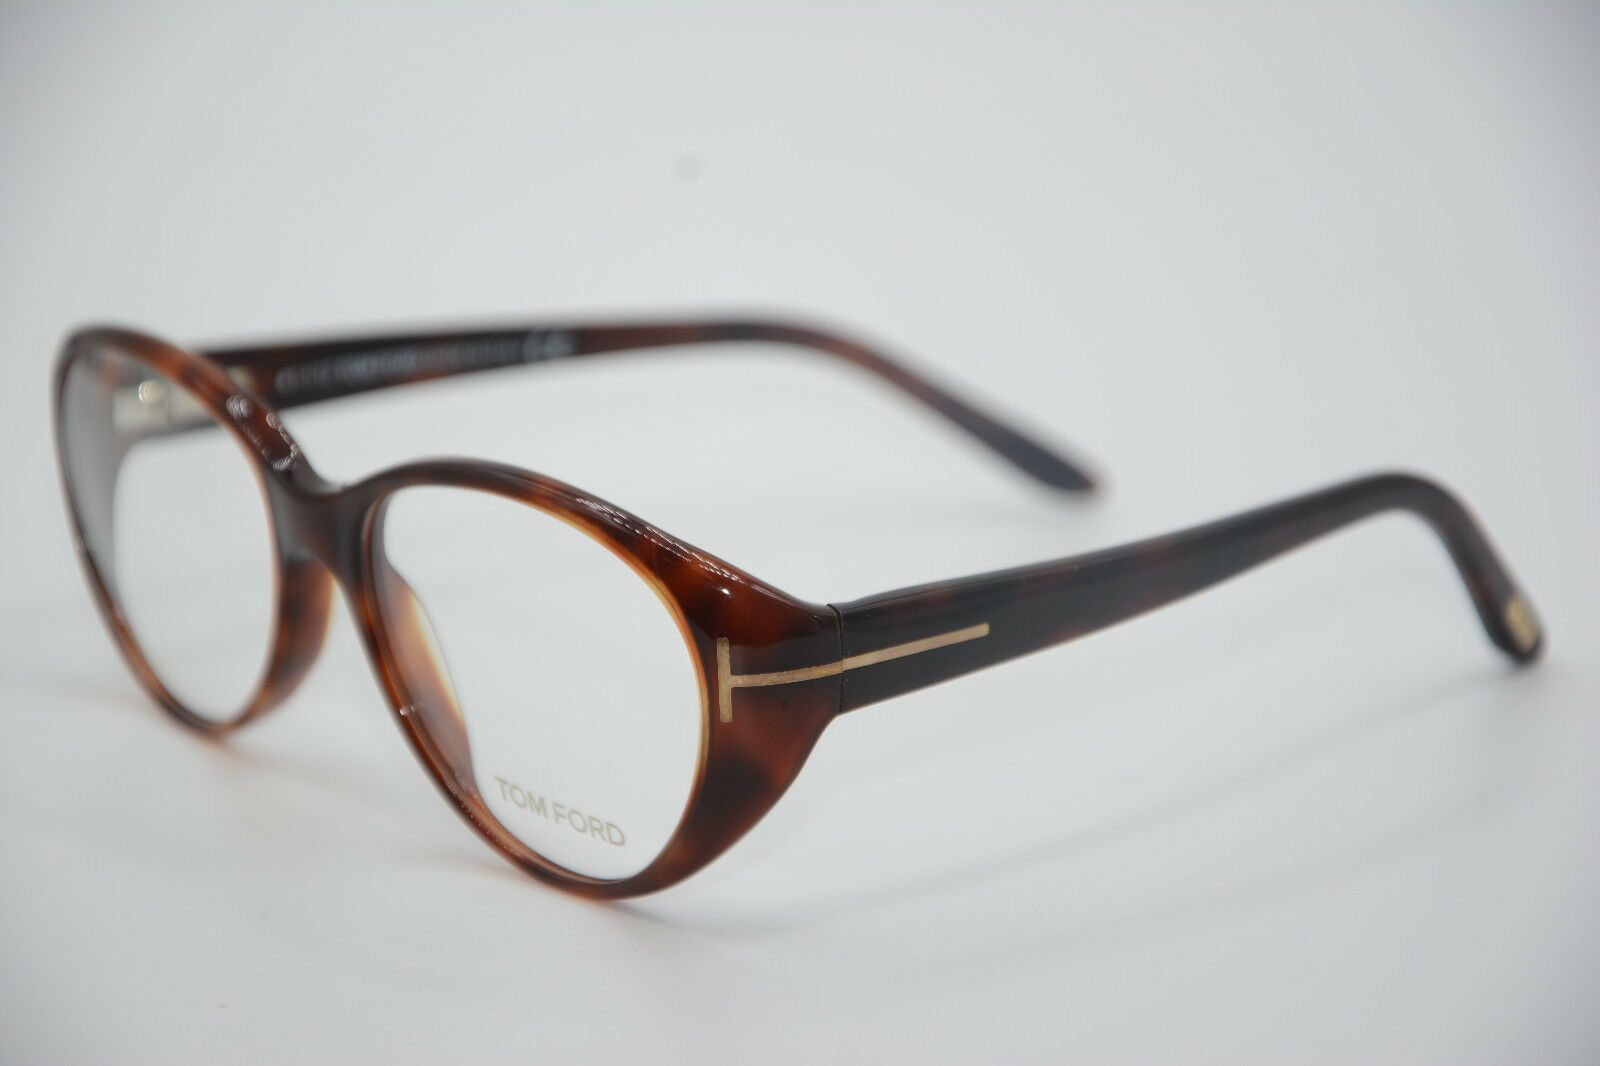 9805f05801 Brand New Tom Ford Tf 5245 052 Havana Eyeglasses Authentic Frame Tf5245  53-15 1 of 5Only 1 available ...